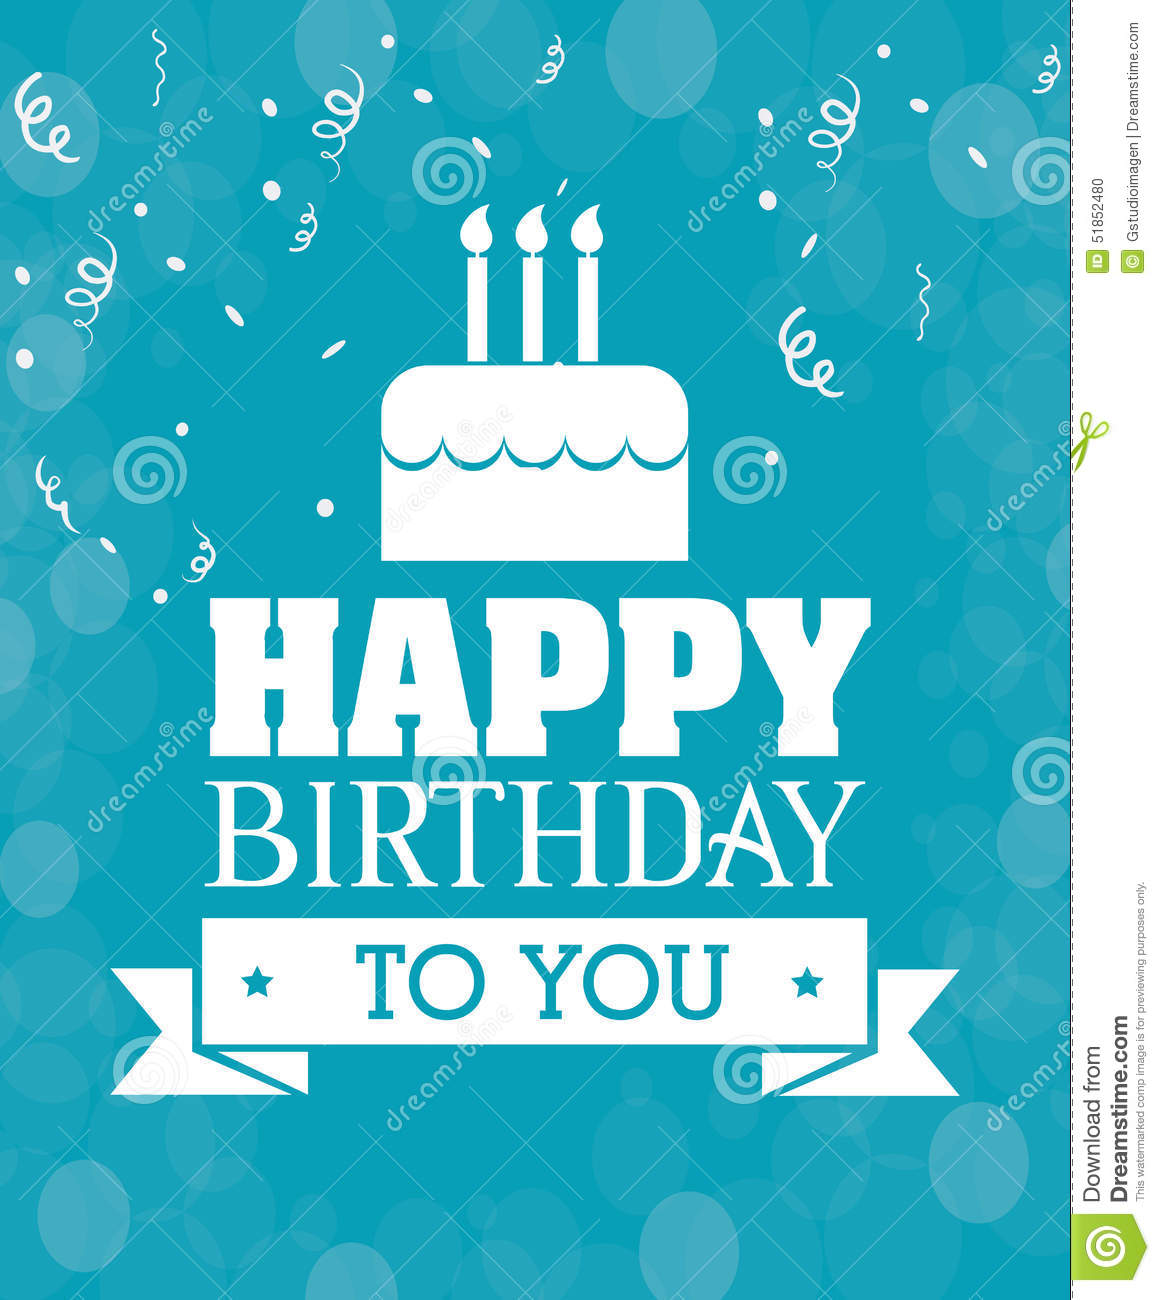 Happy Birthday Card Design. Stock Vector - Image: 51852480